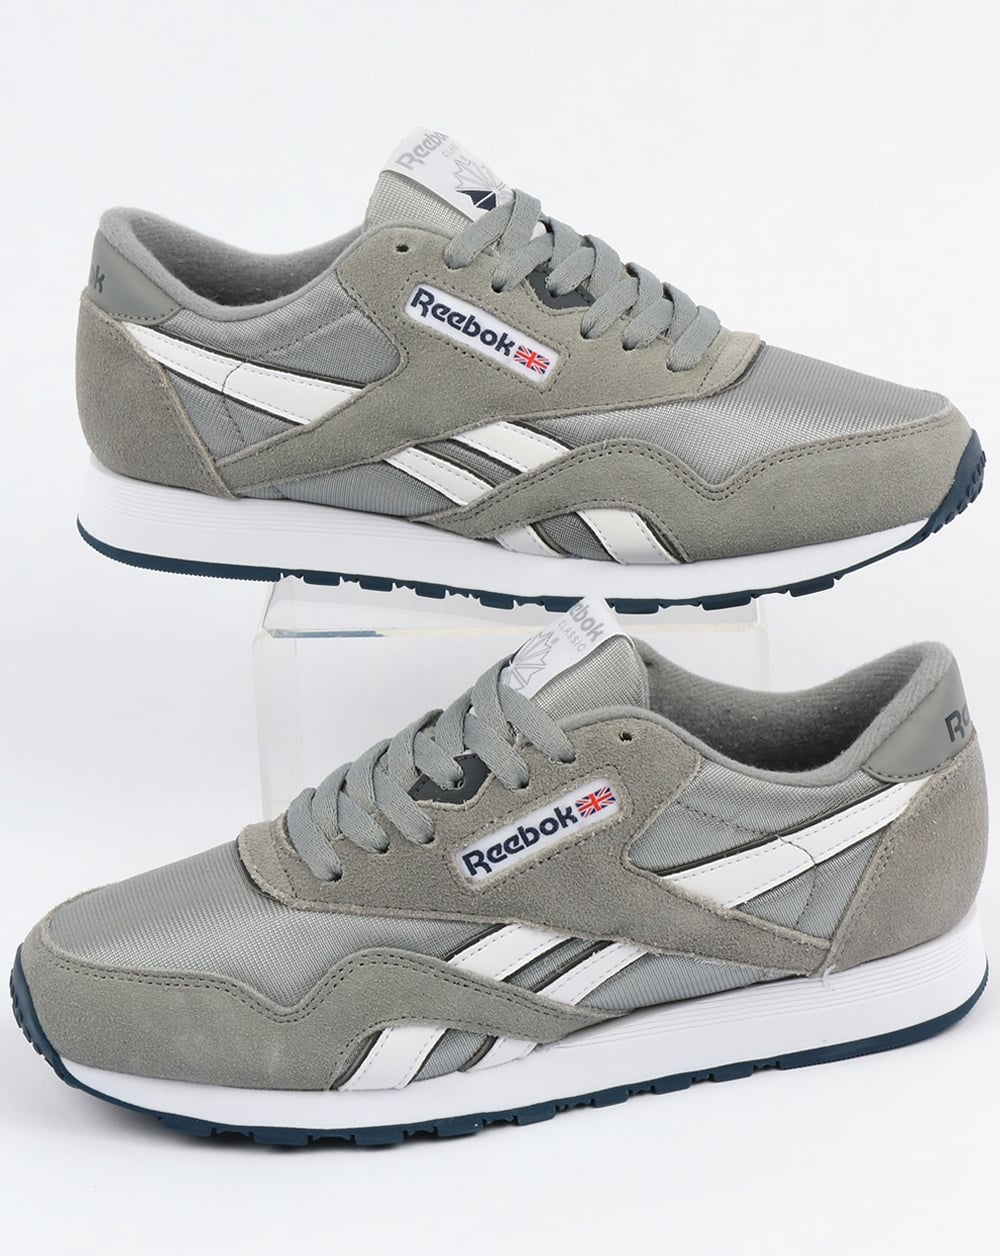 fcf9e81cdfad9e blue reebok trainers cheap   OFF33% The Largest Catalog Discounts